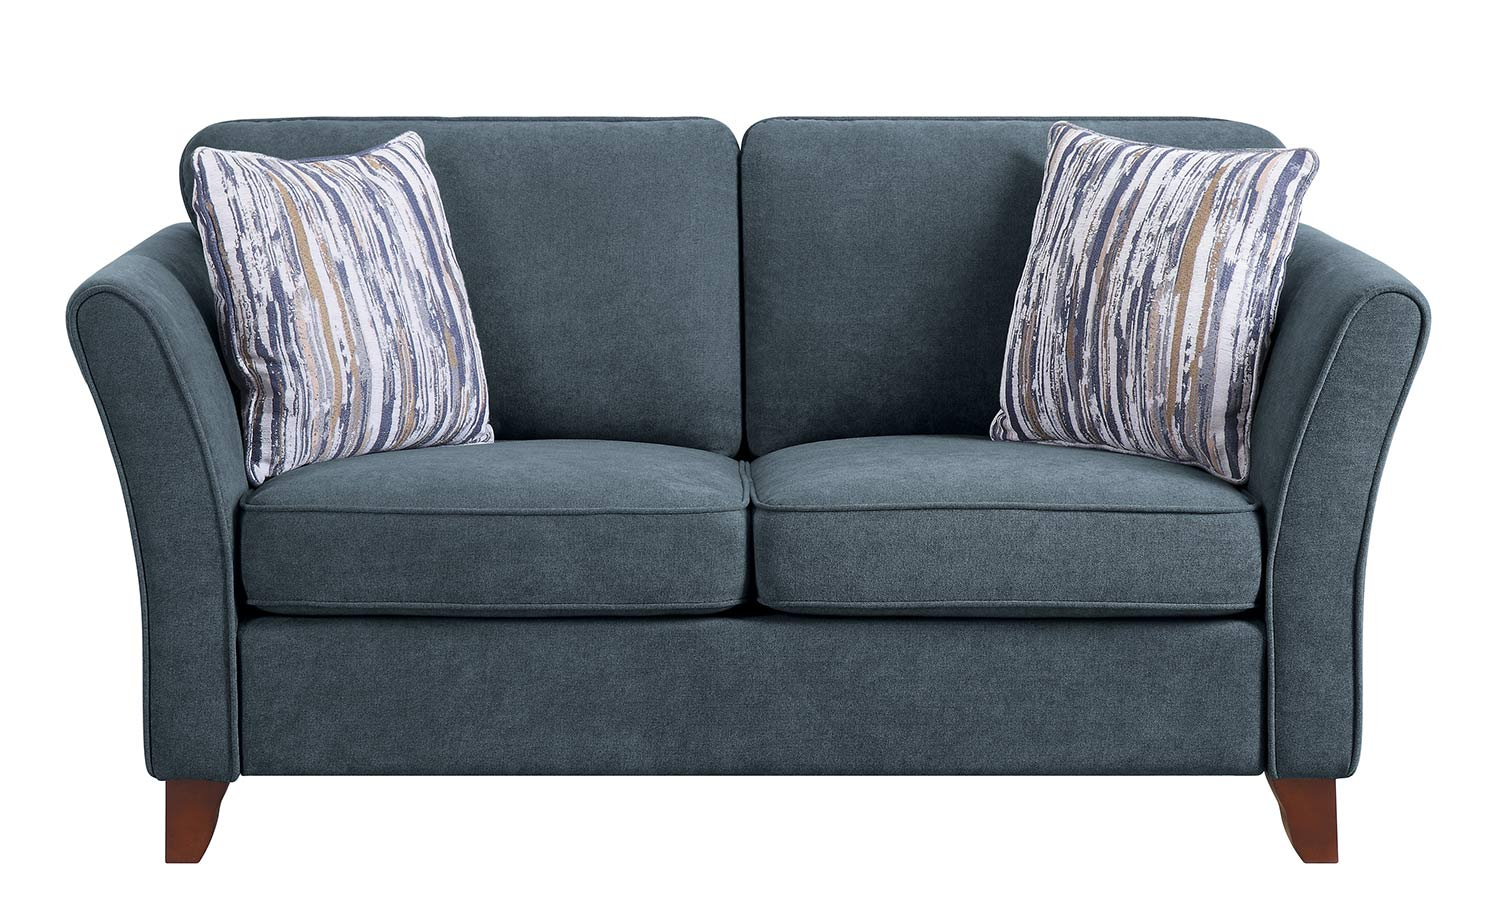 Homelegance Barberton Love Seat - Dark gray